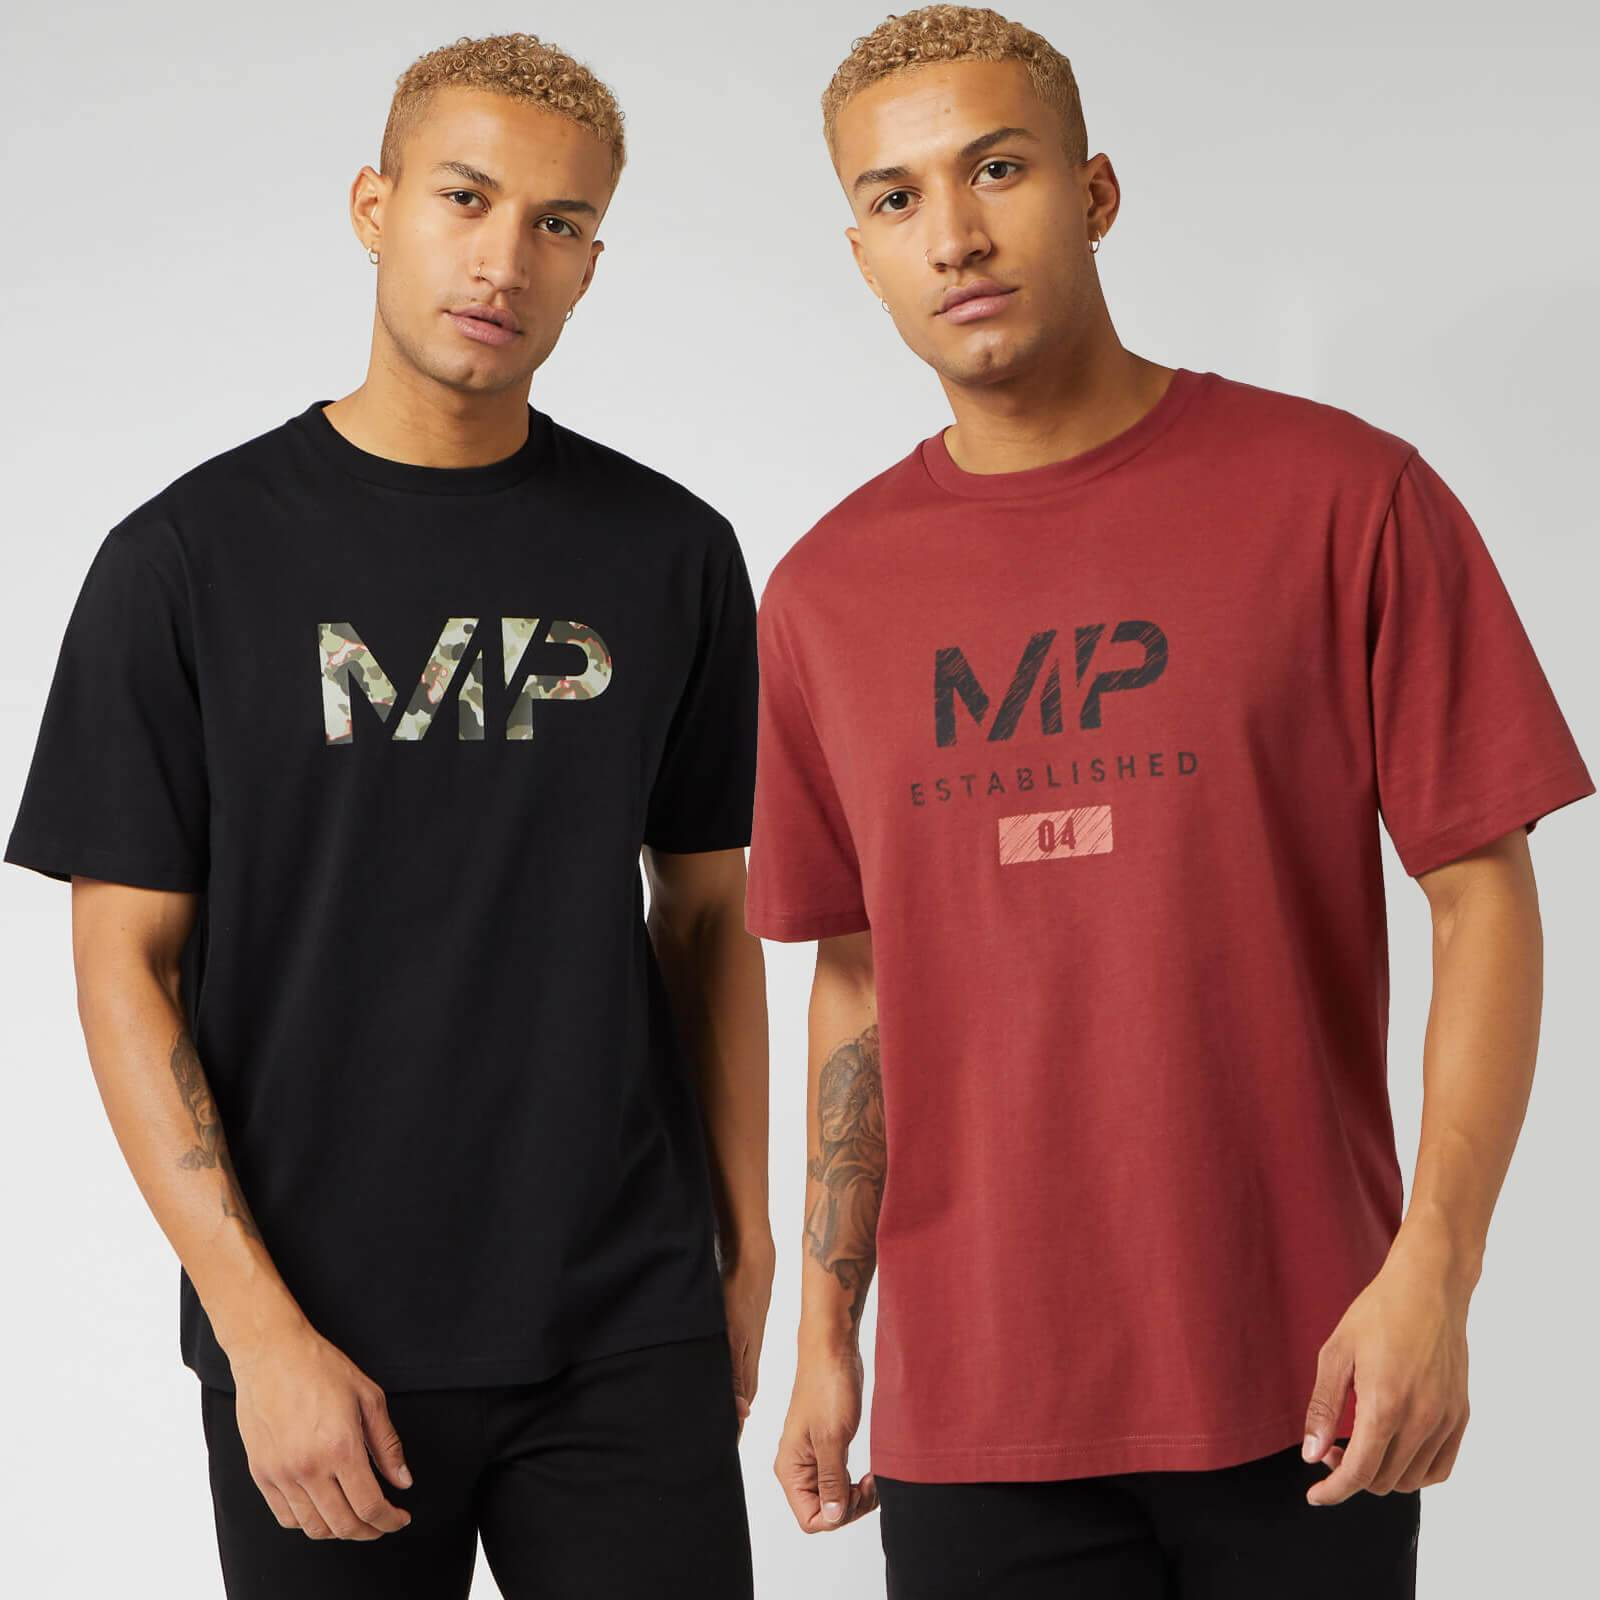 Myprotein Black Friday Limited Edition Graphic T-Shirt (2 Pack) - Black/Paprika - S